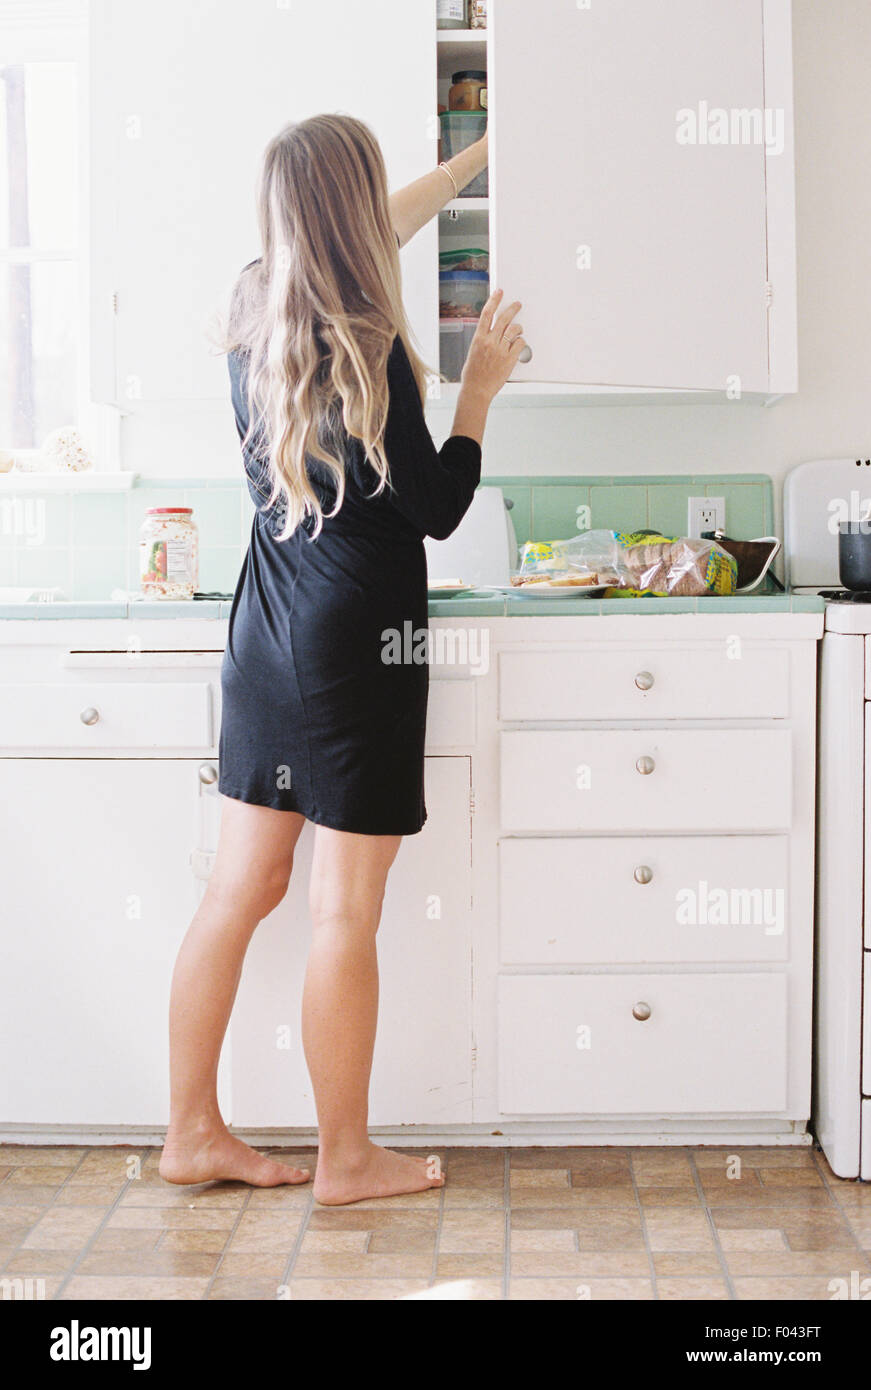 A woman with long blond hair standing barefoot in a kitchen, opening a cupboard. - Stock Image